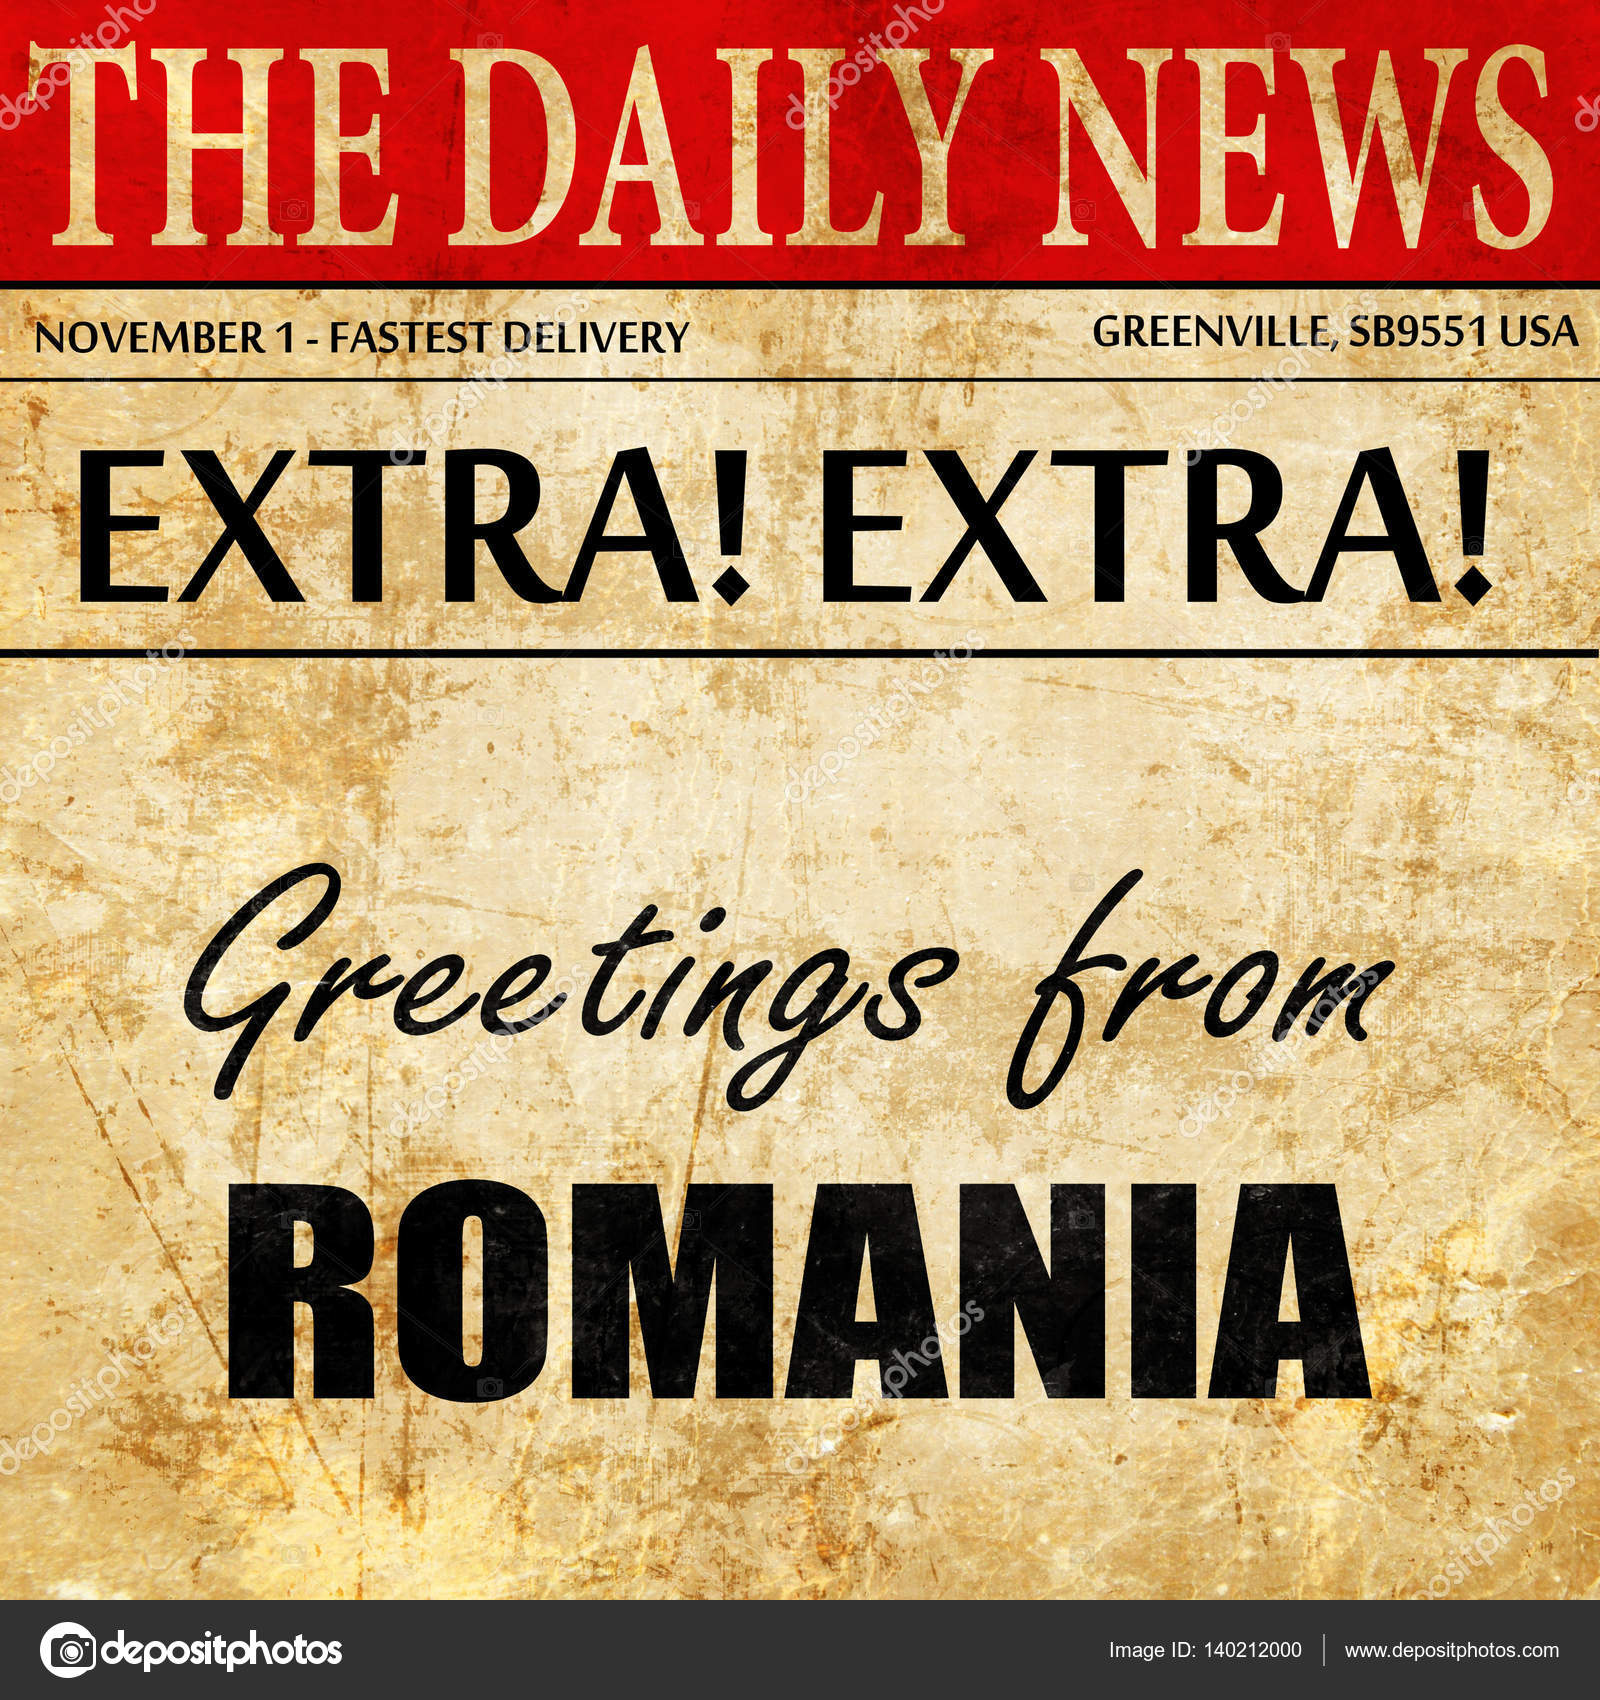 Greetings from romania newspaper article text stock photo greetings from romania newspaper article text stock photo m4hsunfo